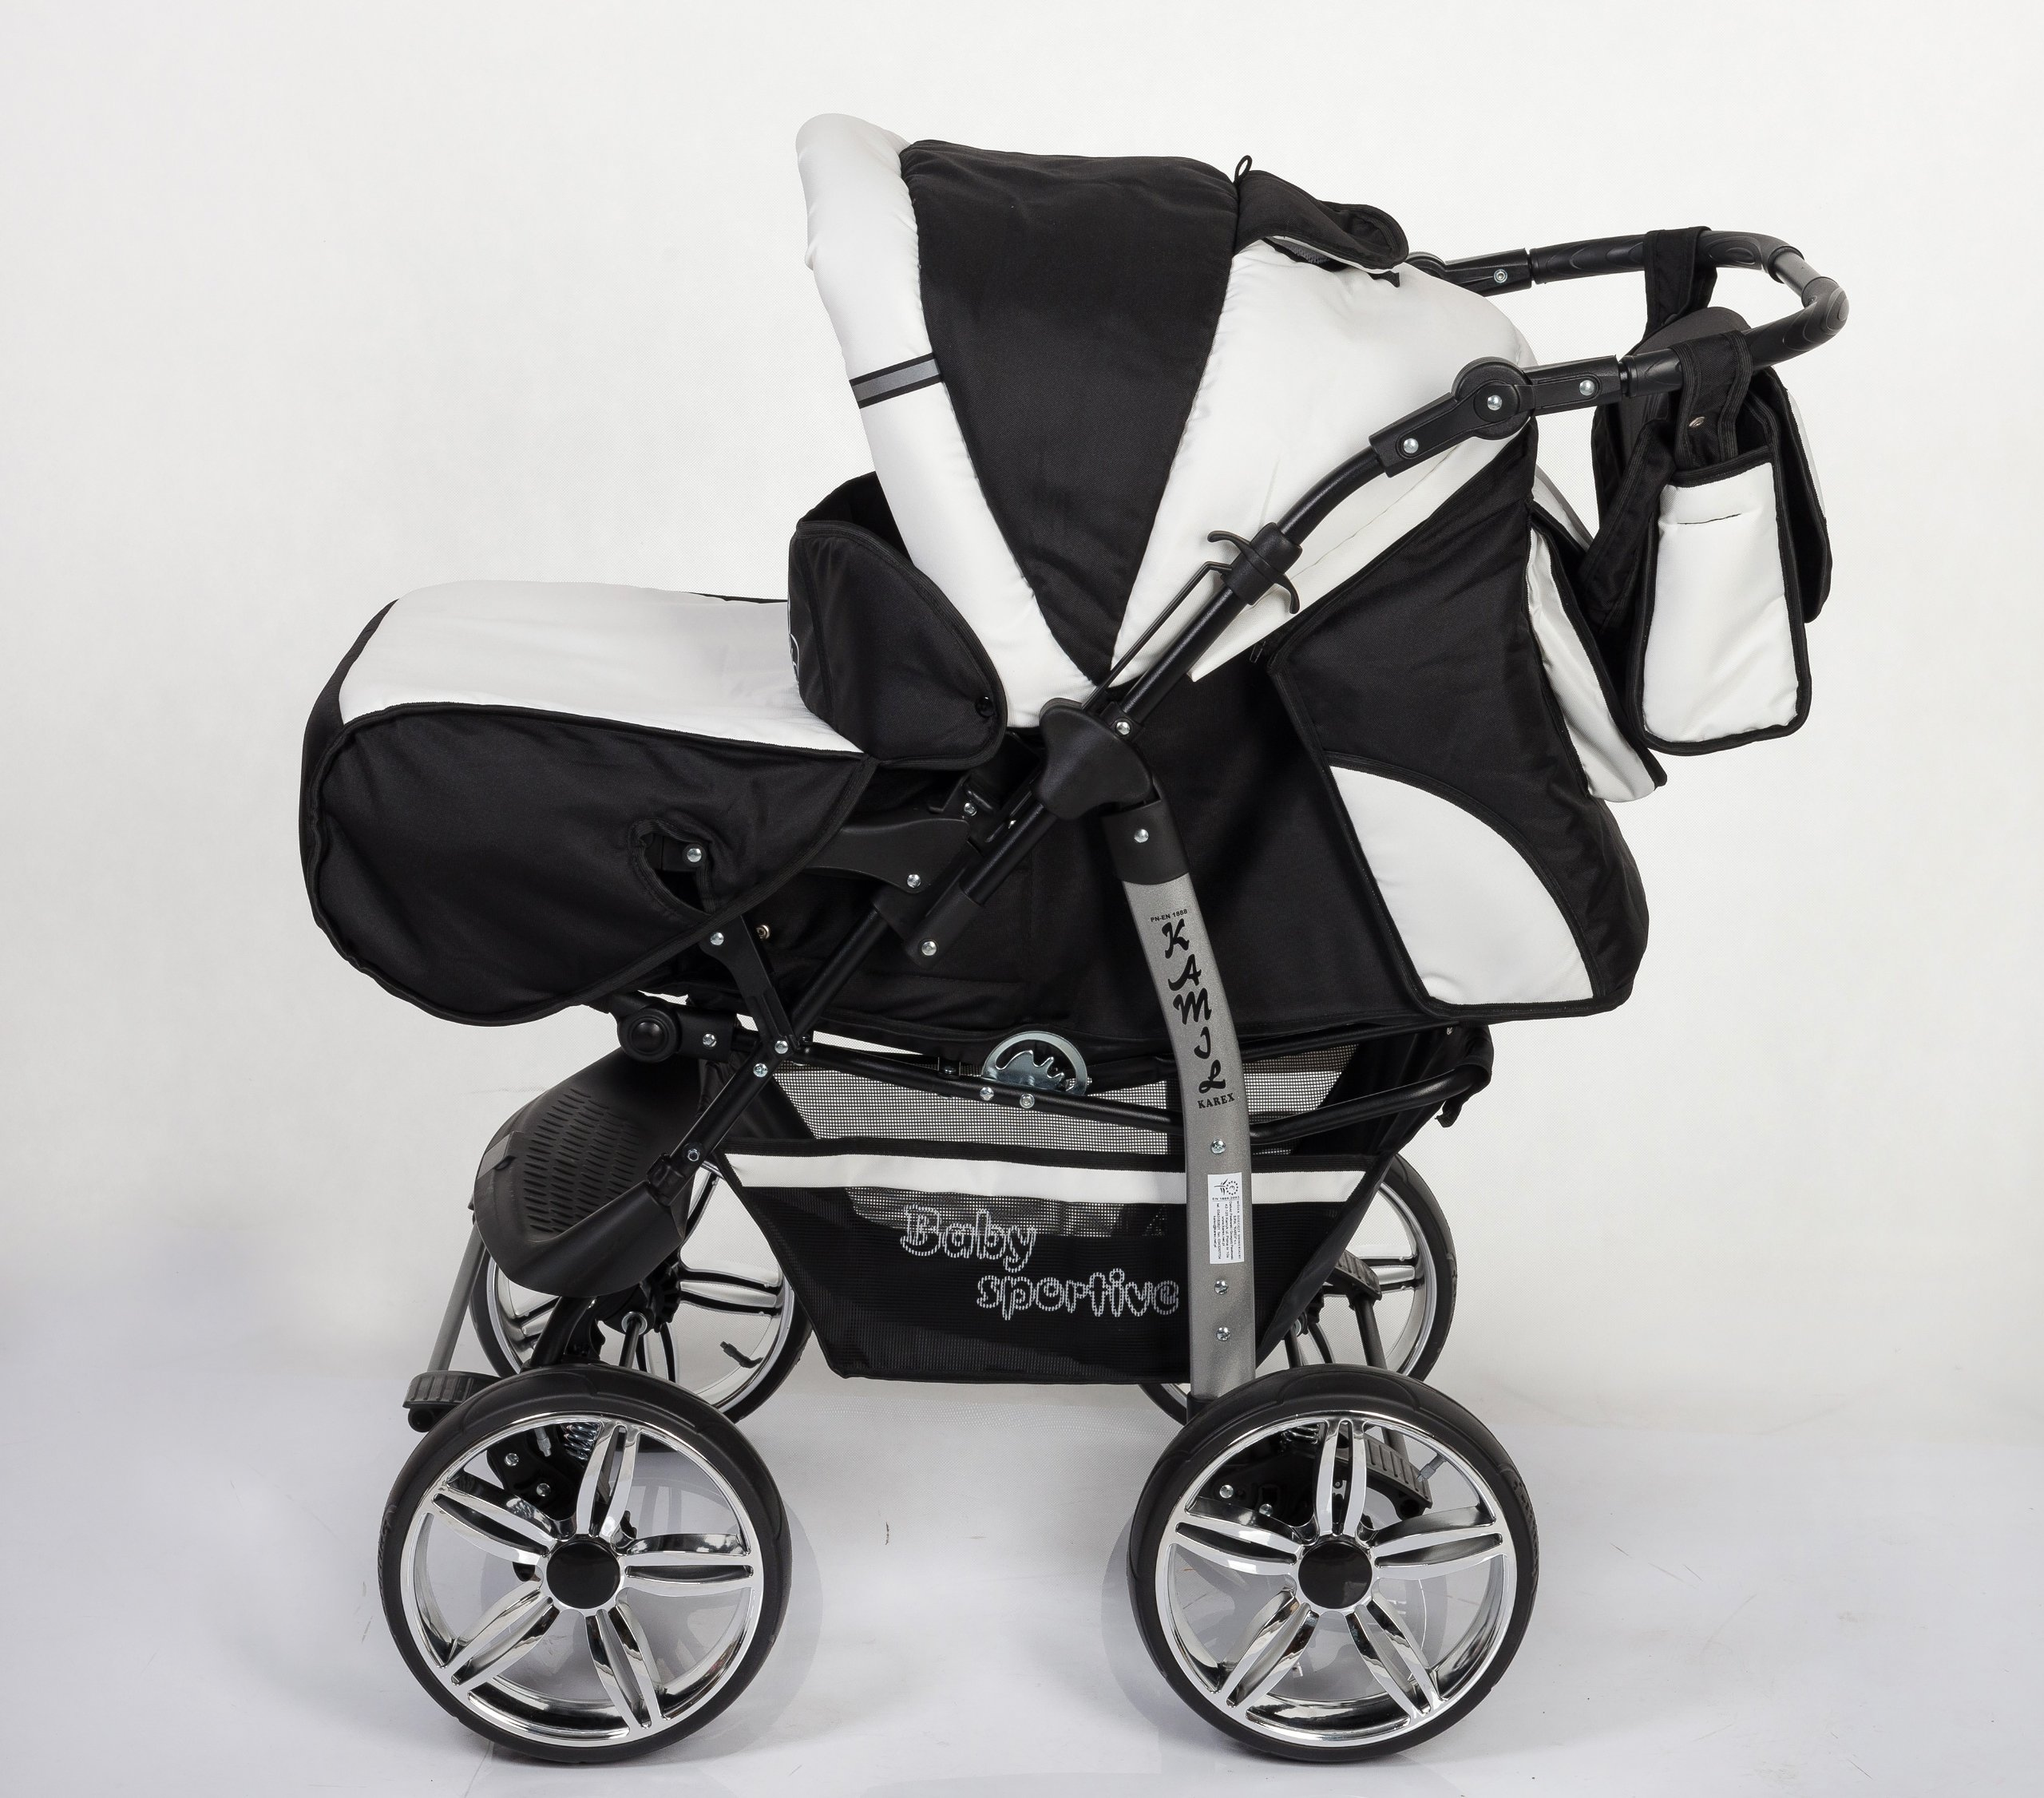 3-in-1 Travel System with Baby Pram, Car Seat, Pushchair & Accessories, Black & White   3